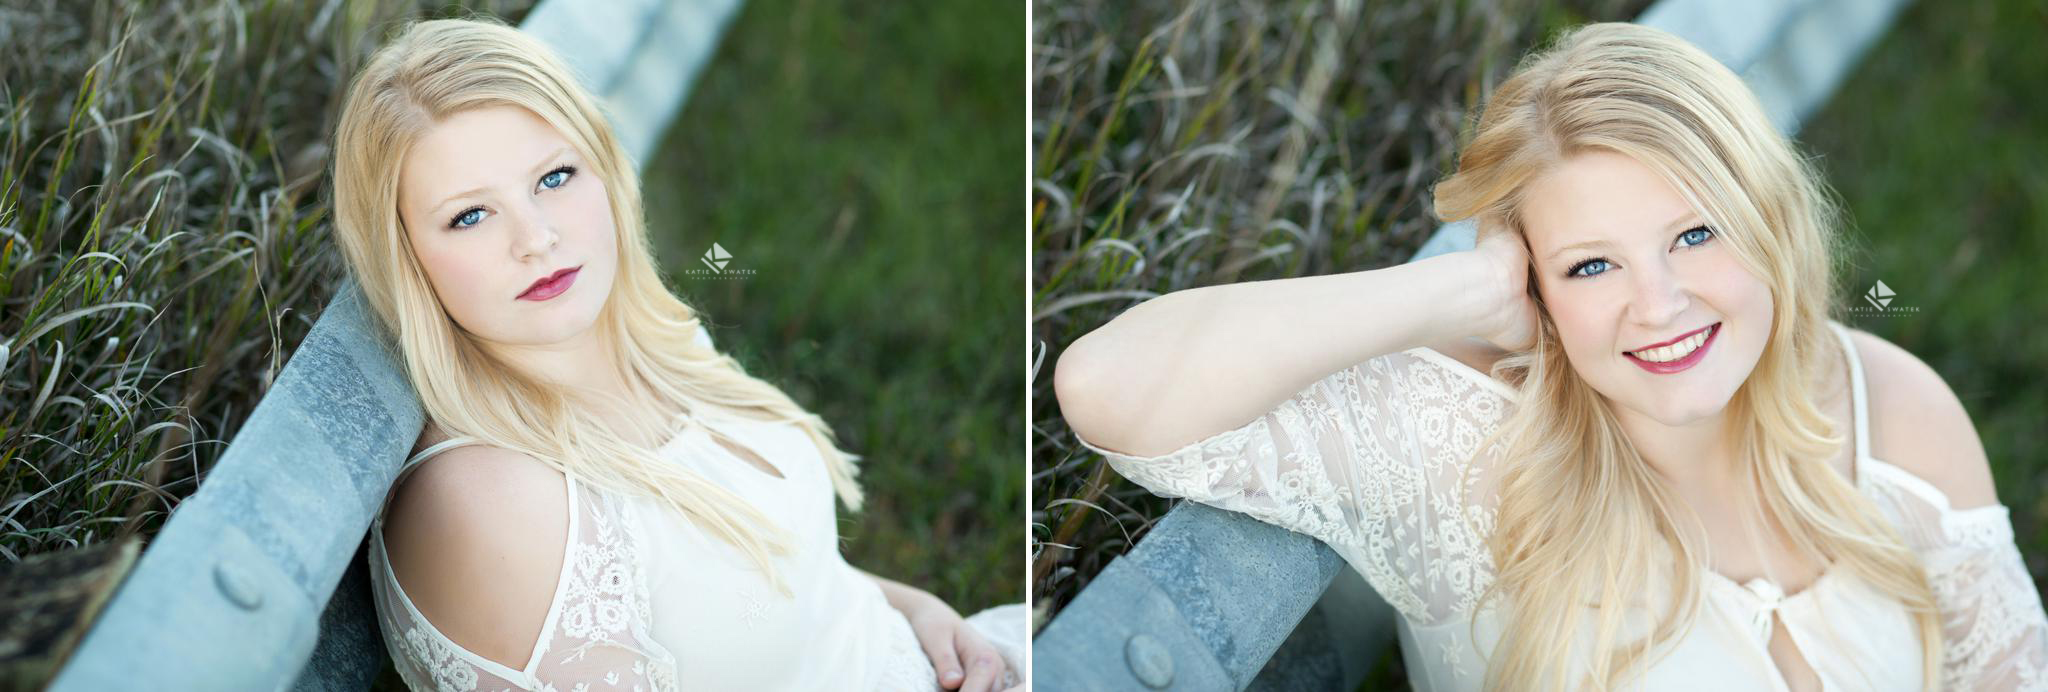 blonde senior girl in a white lace dress sitting next to a road divider in a tall grass field in scotland sd